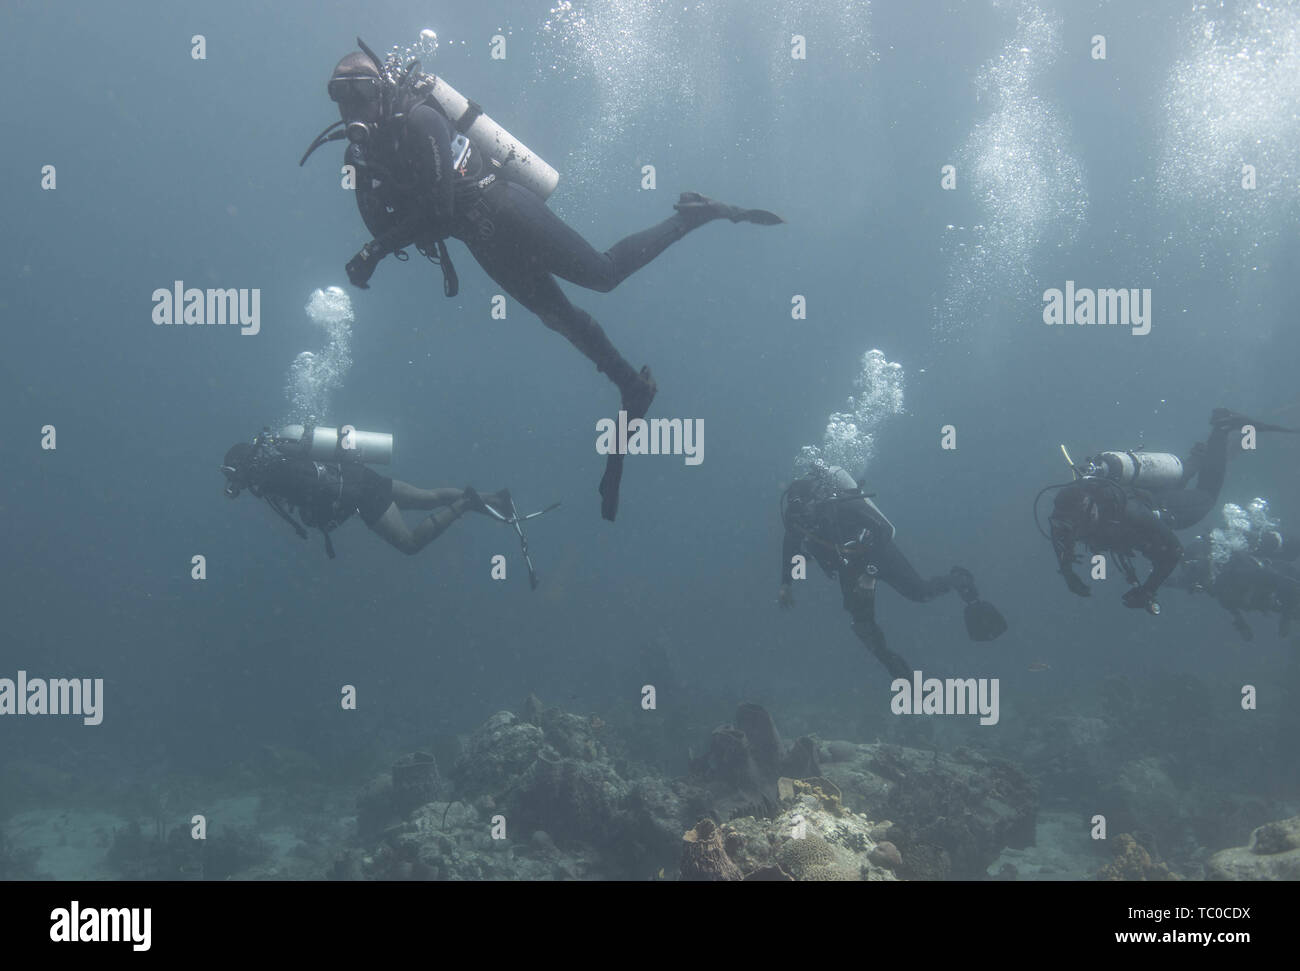 Canadian Forces Clearance Divers from Fleet Diving Unit (Atlantic) conduct a check-out dive with divers from St. Vincent and the Grenadines, Mexico, Bahamas and Trinidad and Tobago, during Exercise TRADEWINDS 19 in St.Vincent and the Grenadines, on 2 June, 2019.     In its 35th year, 22 nations are participating in Exercise TRADEWINDS to promote regional security as well as humanitarian assistance and disaster relief.    Photo: MCpl True-dee McCarthy, Canadian Forces Combat Camera   IS03-2019-0003-006 - Stock Image